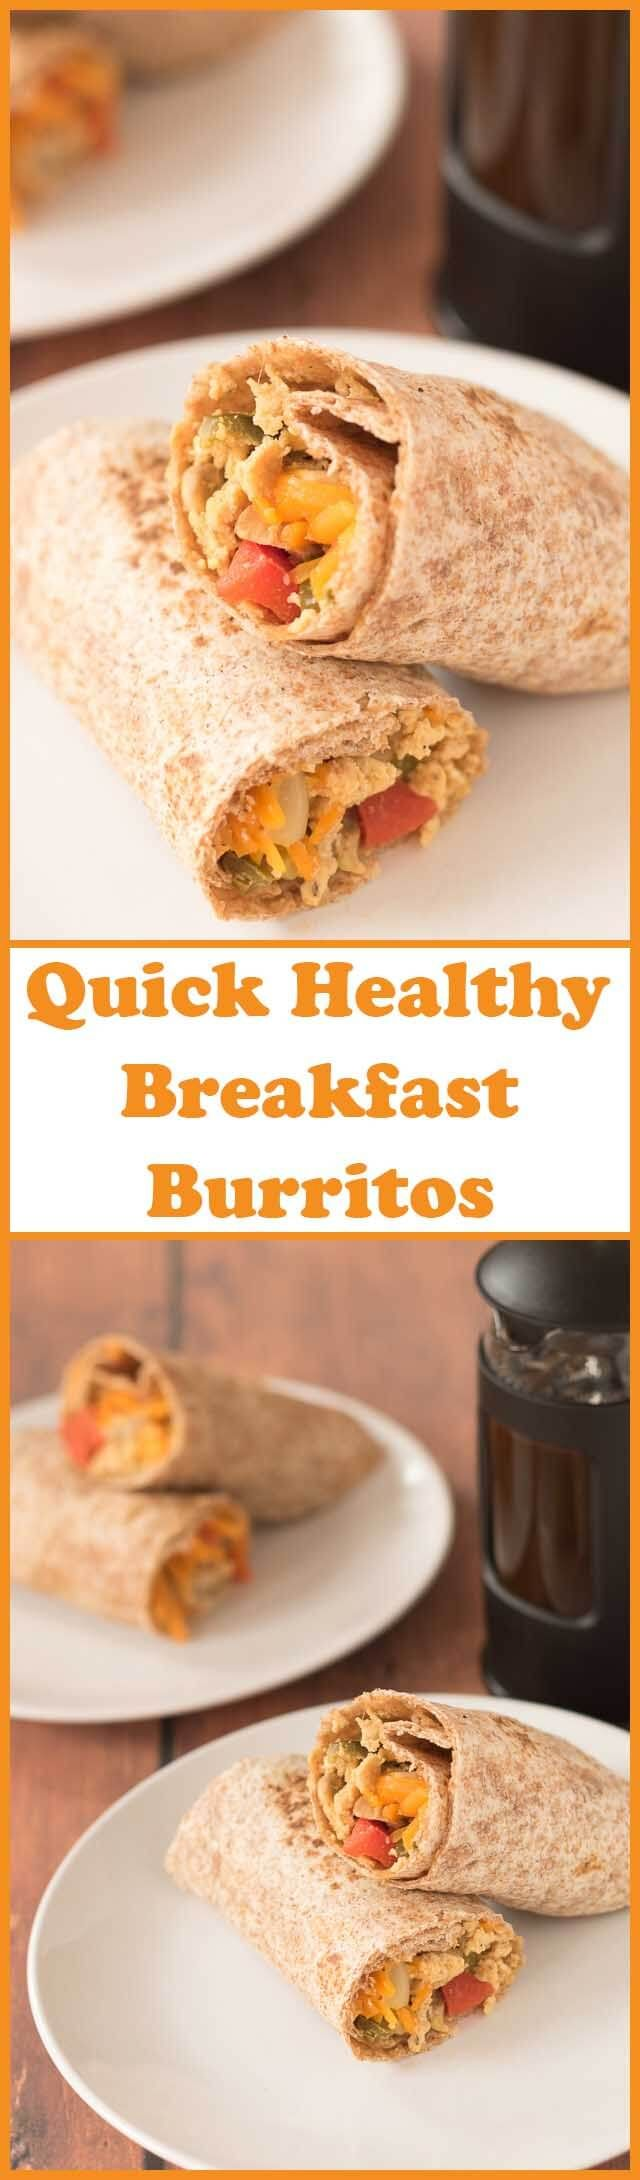 Quick healthy breakfast burritos are the perfect start to the weekend. Made in one pan this delicious filling combination of vegetables, eggs and cheese takes hardly any time at all to make allowing you to get on and enjoy your weekend!